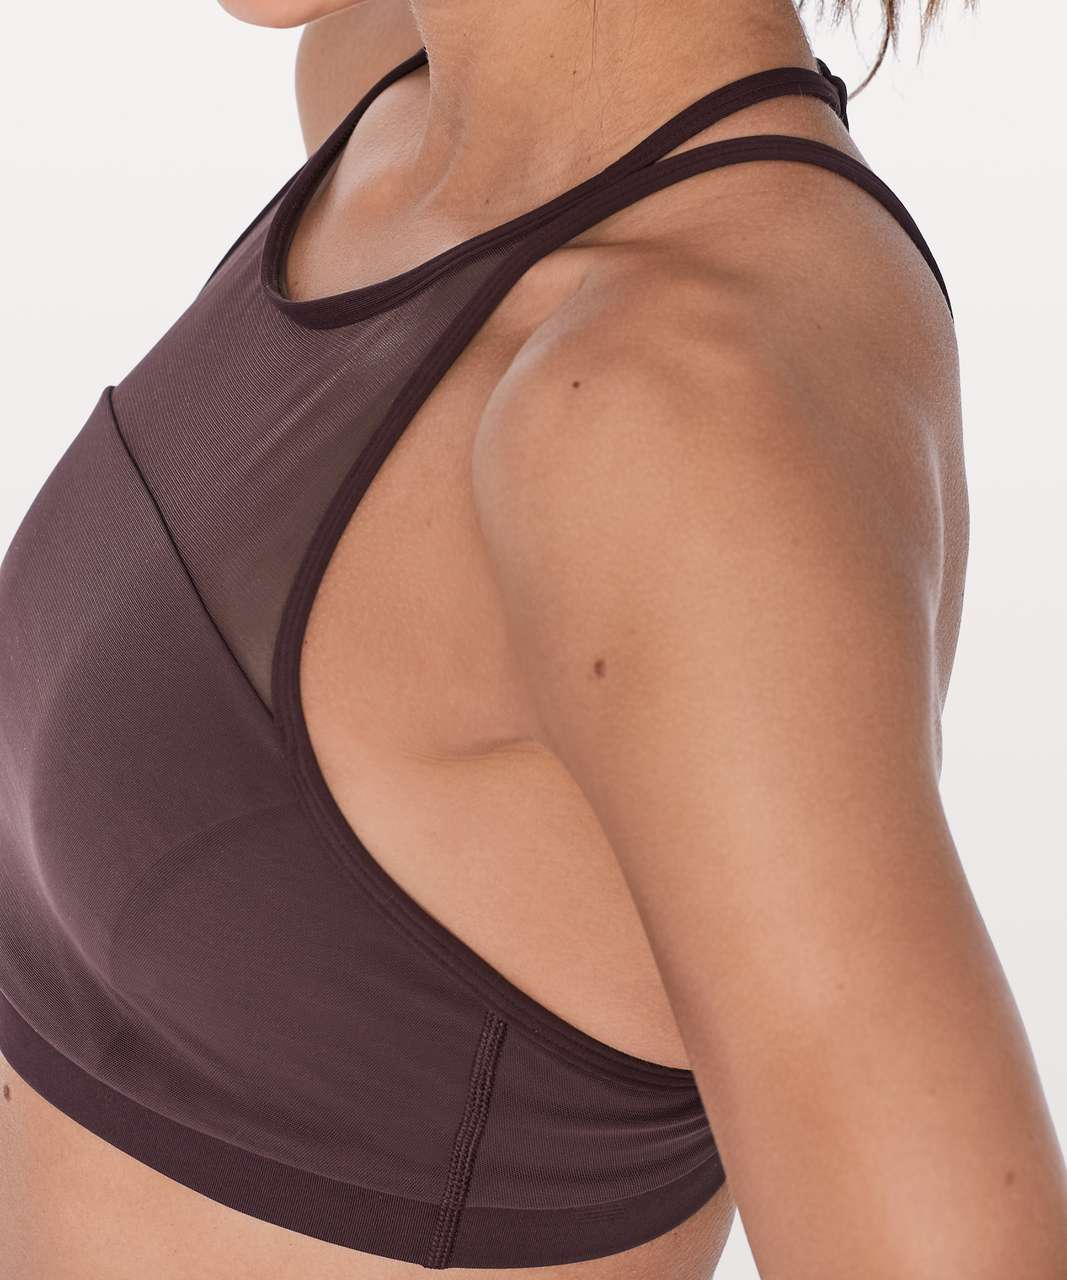 Lululemon Get Set Bra - Black Cherry